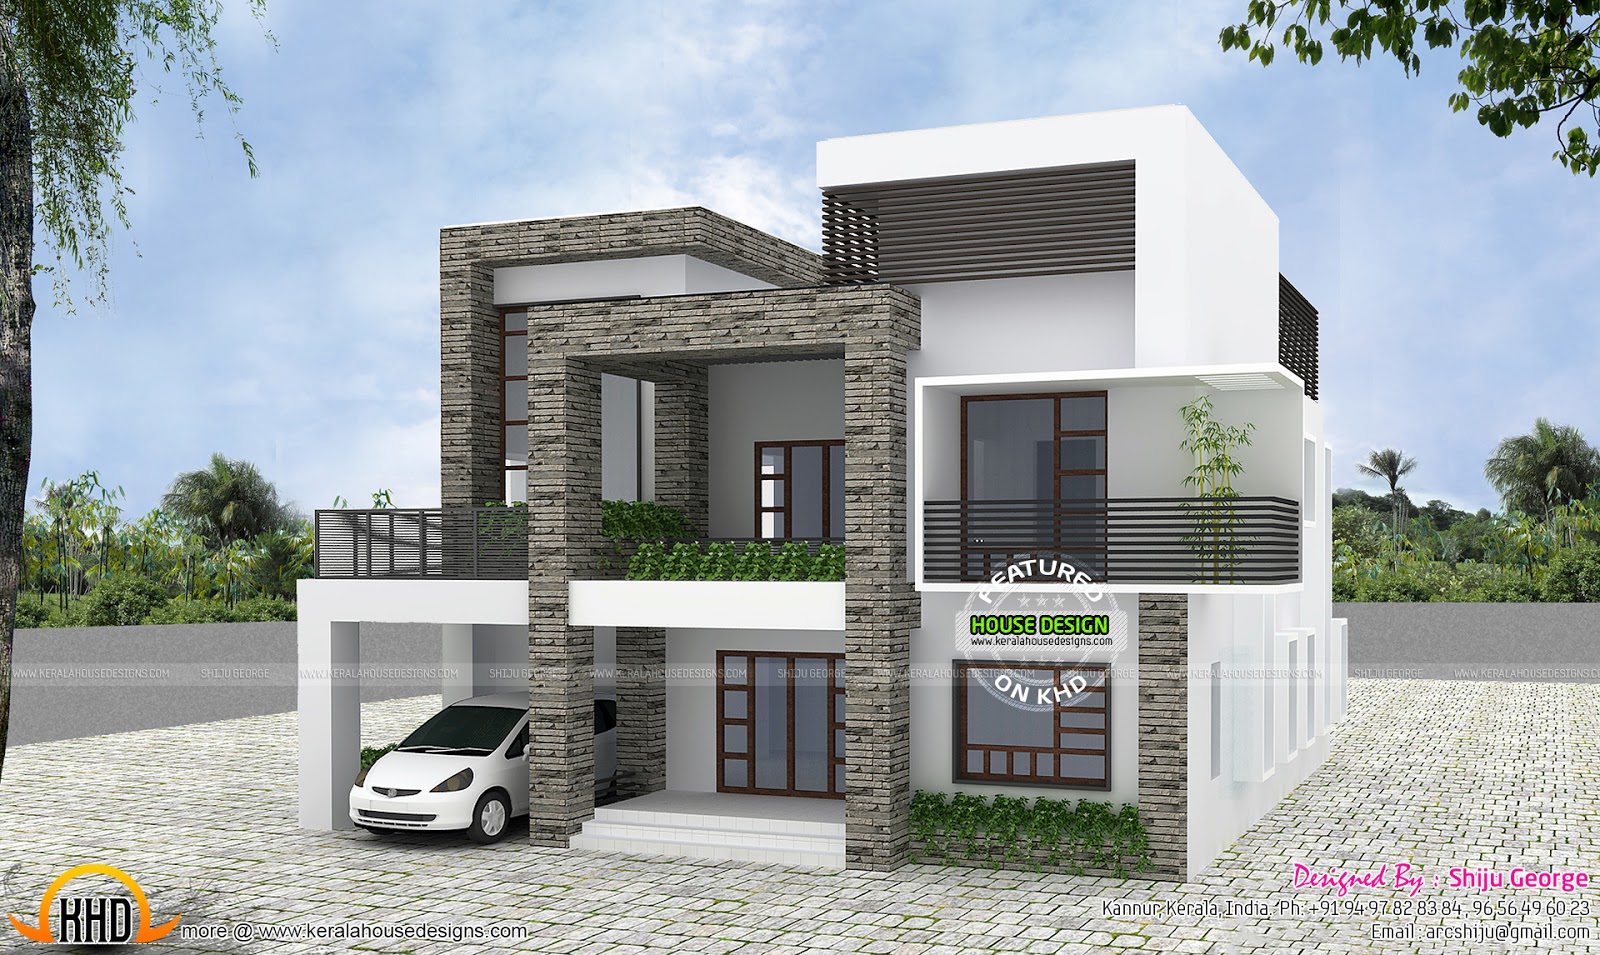 Contemporary house by shiju george home design simple for House by design